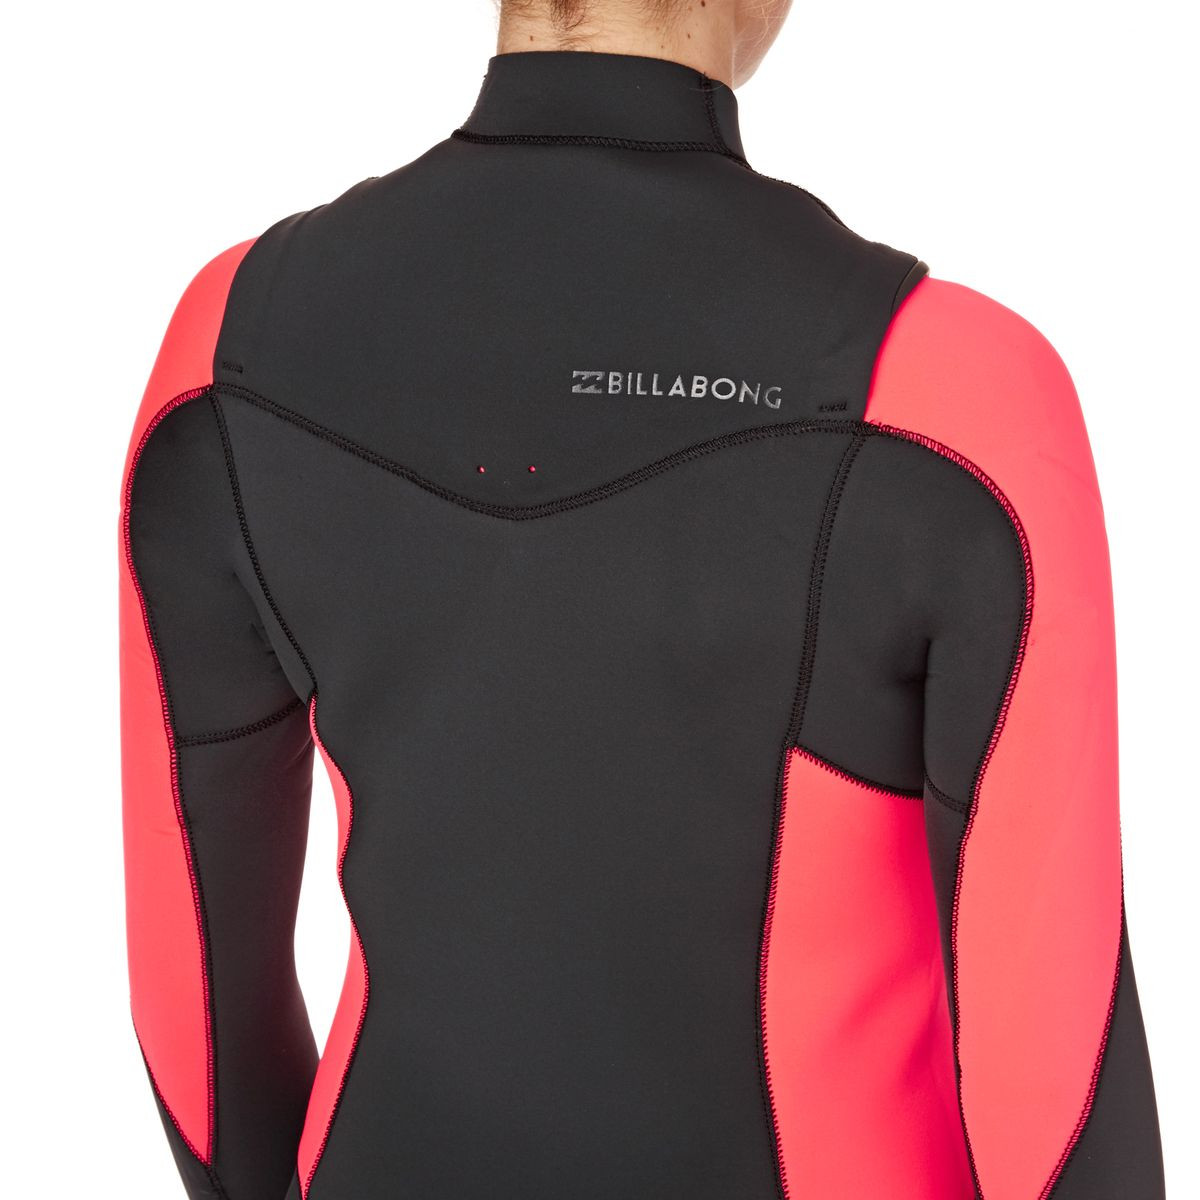 Billabong Womens Synergy 3/2mm 2017 Chest Zip Wetsuit - Coral Kiss